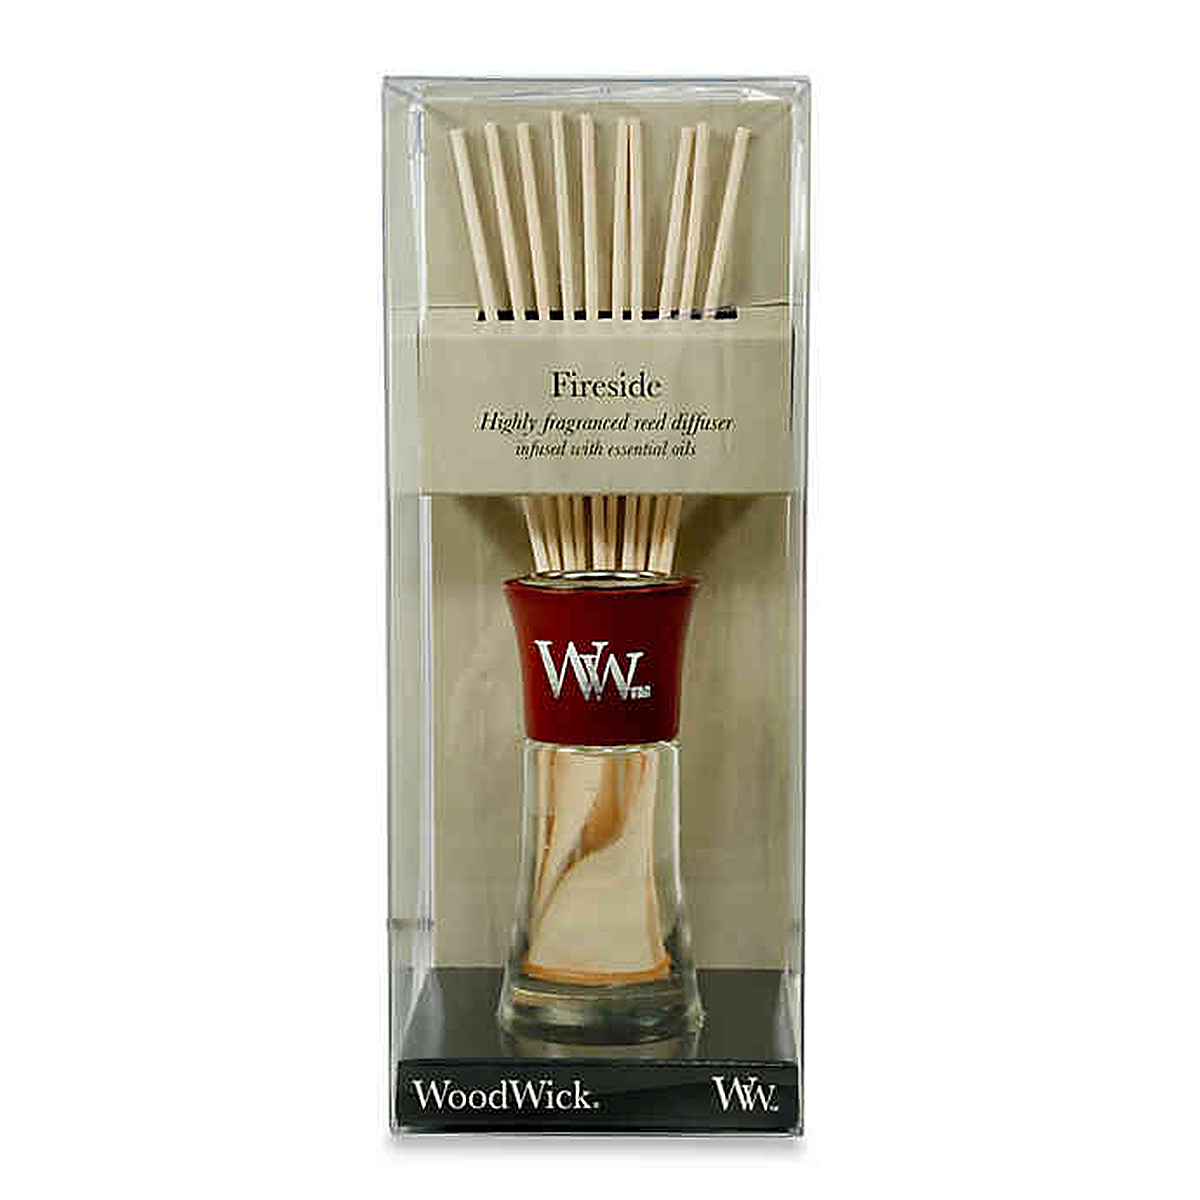 WoodWick Fireside Small Reed Diffuser